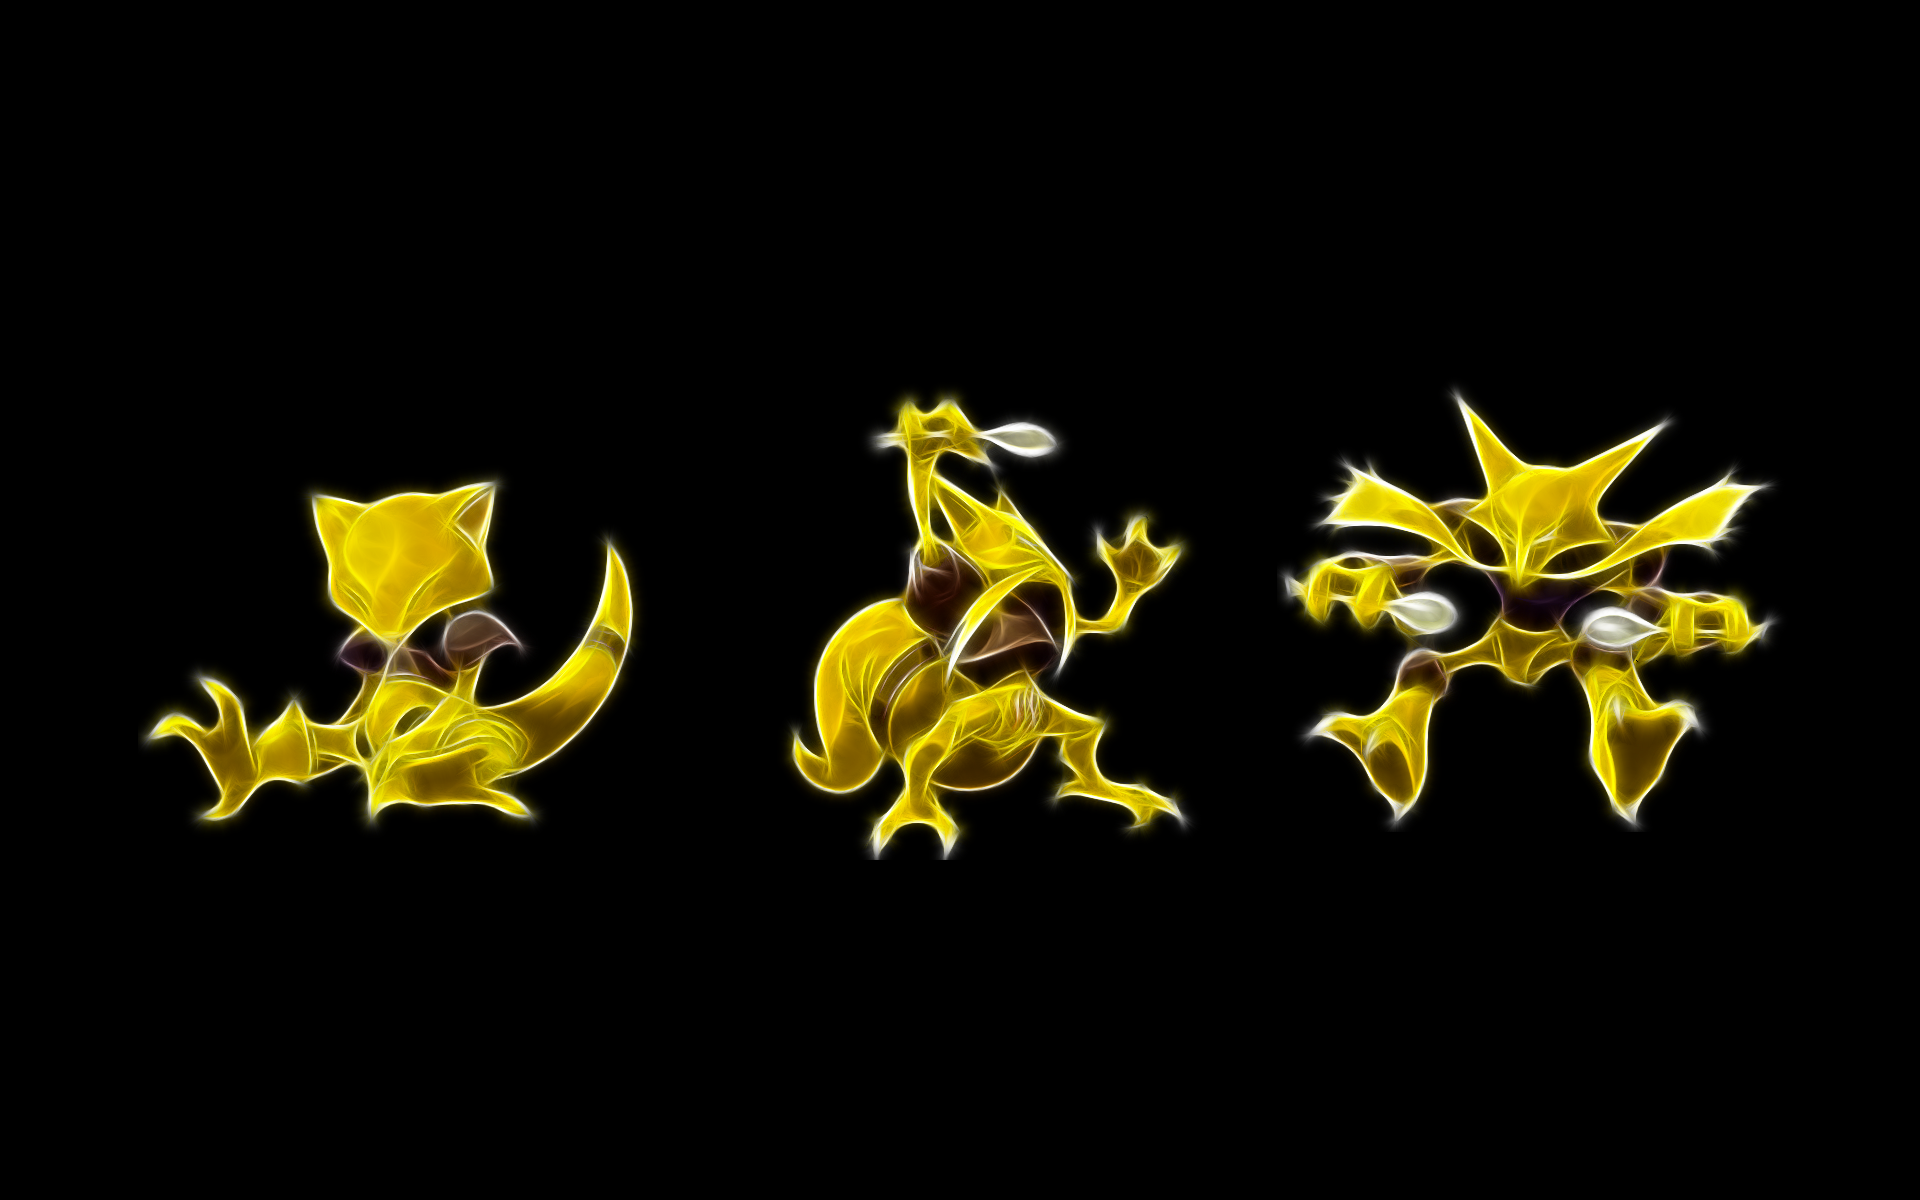 Download Pokemon Abra Wallpaper 1920x1200 Wallpoper 394521 1920x1200